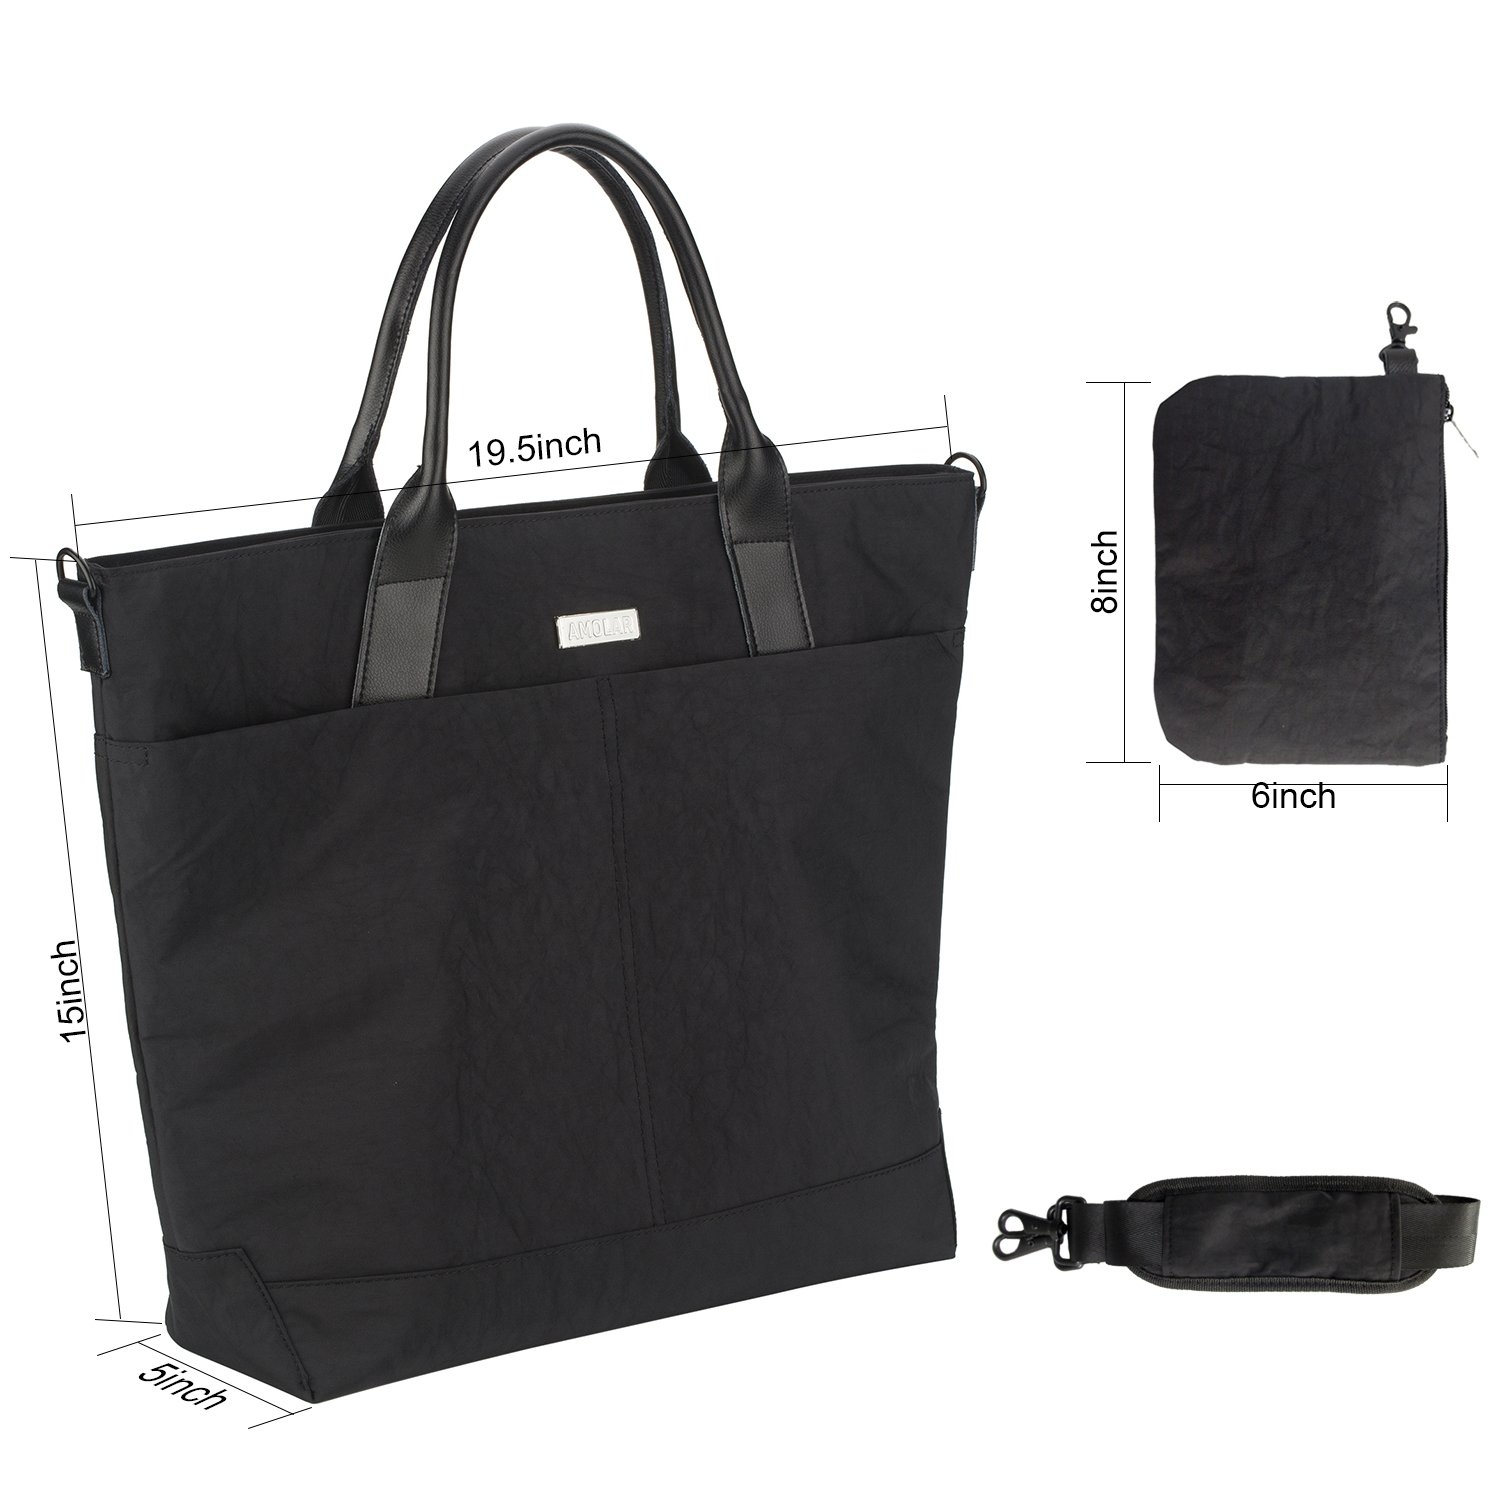 Laptop Bag for Women Up to 17 inch with Luggage Pass-Thru